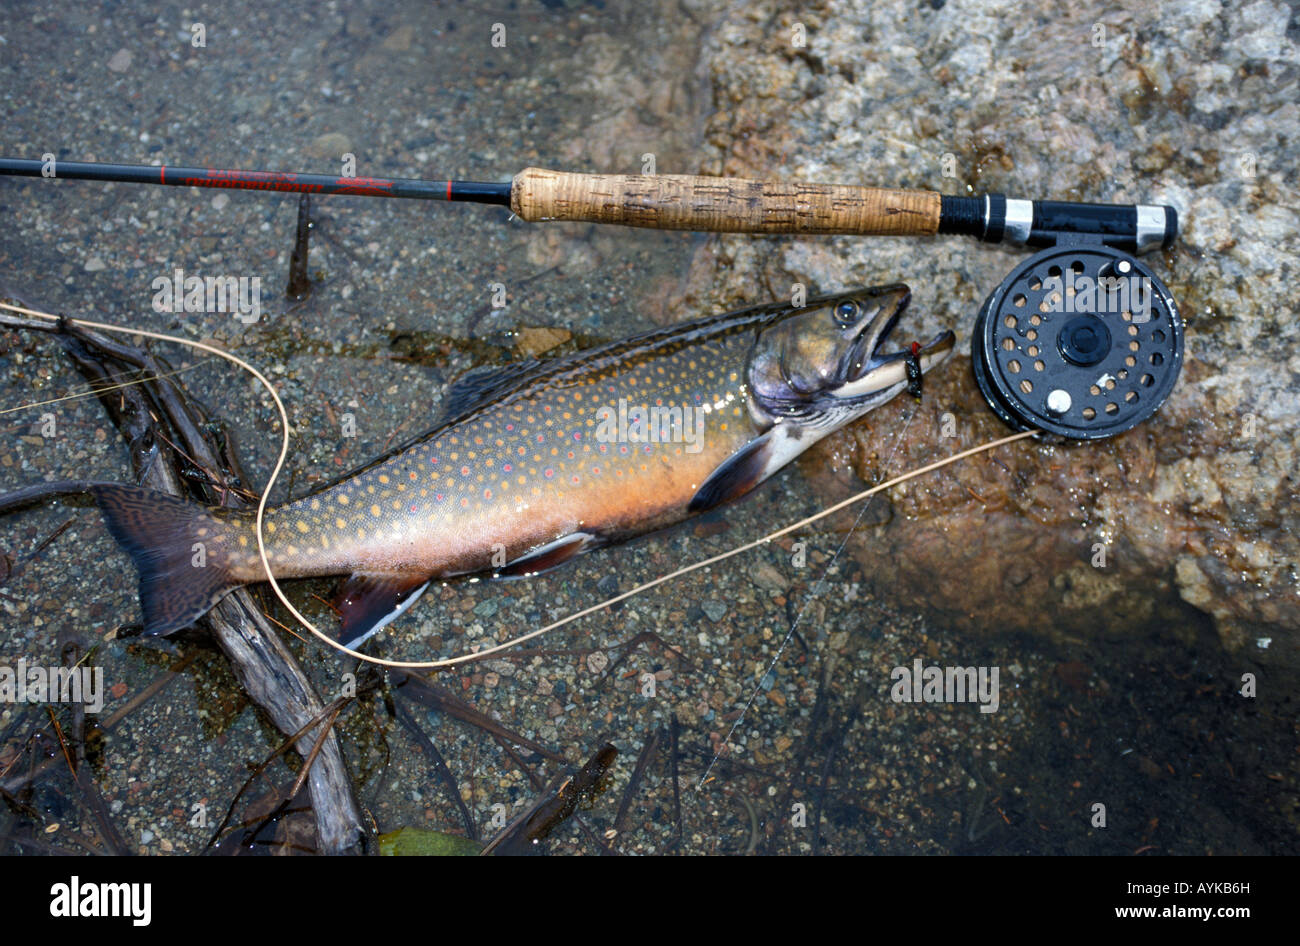 brook trout and fly rod stock photo, royalty free image: 17129464, Fly Fishing Bait